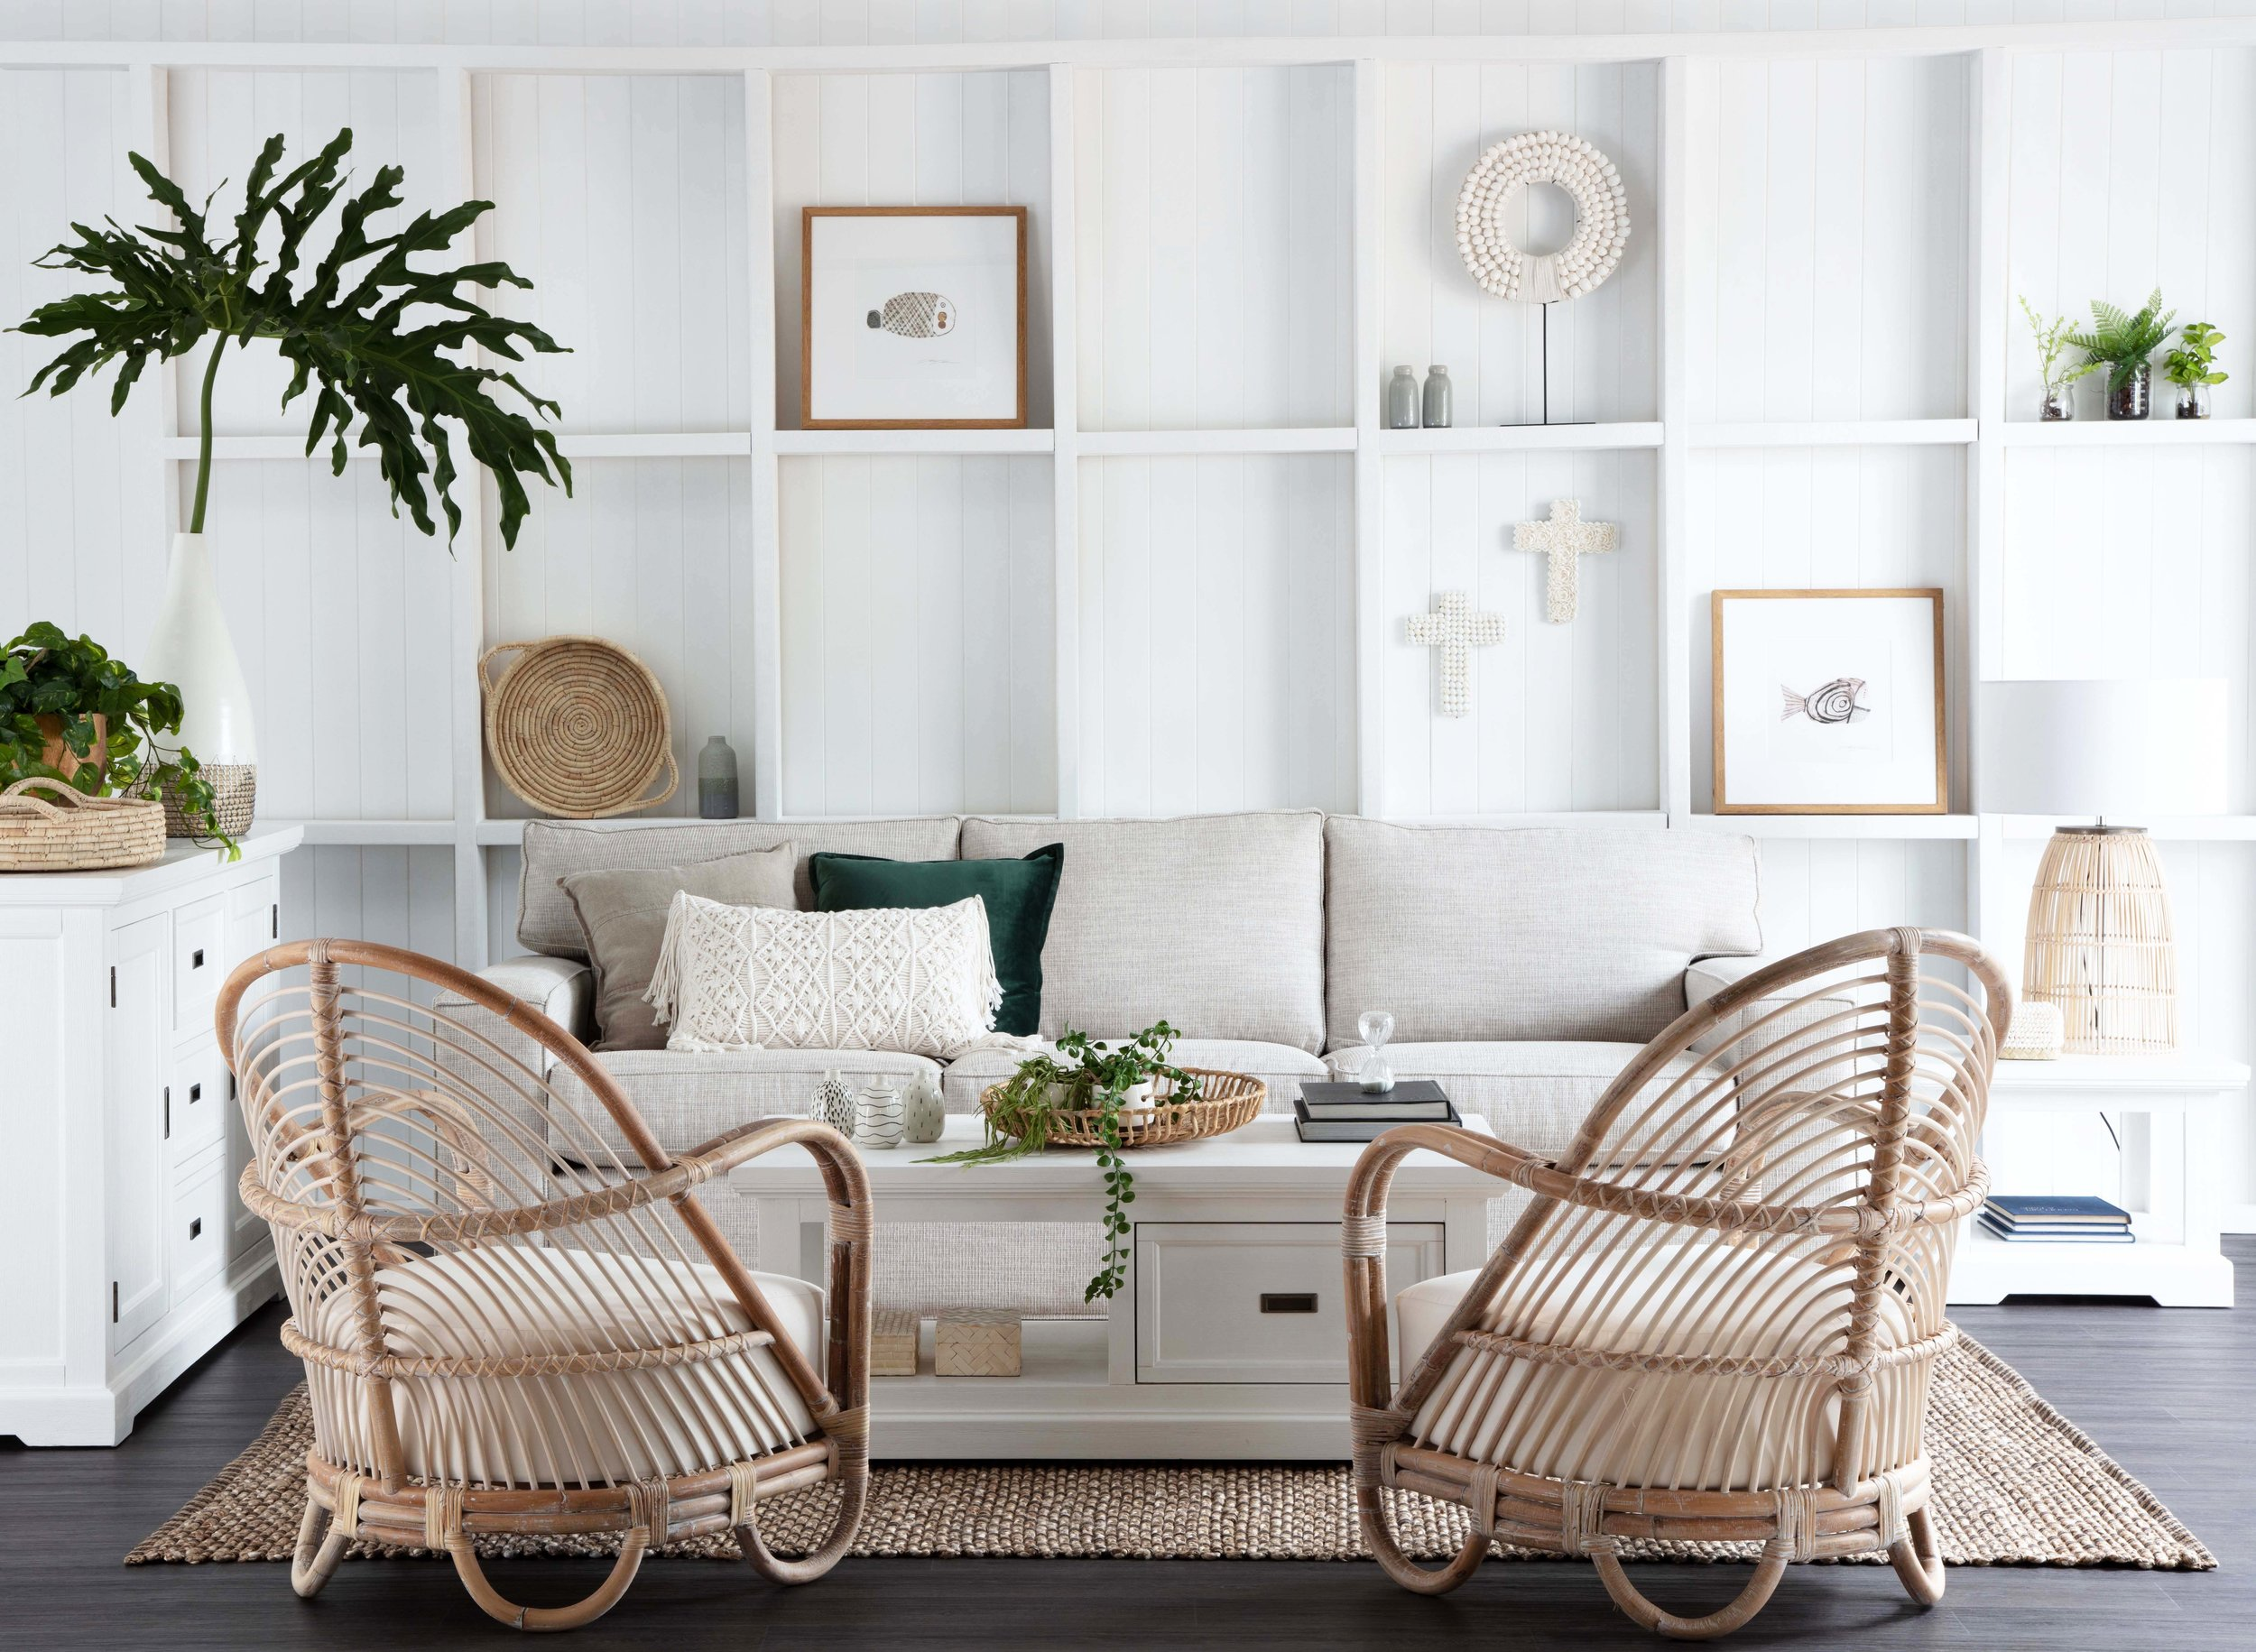 Ashton three-seater sofa, Hamptons buffet and coffee table, Martini designer chairs